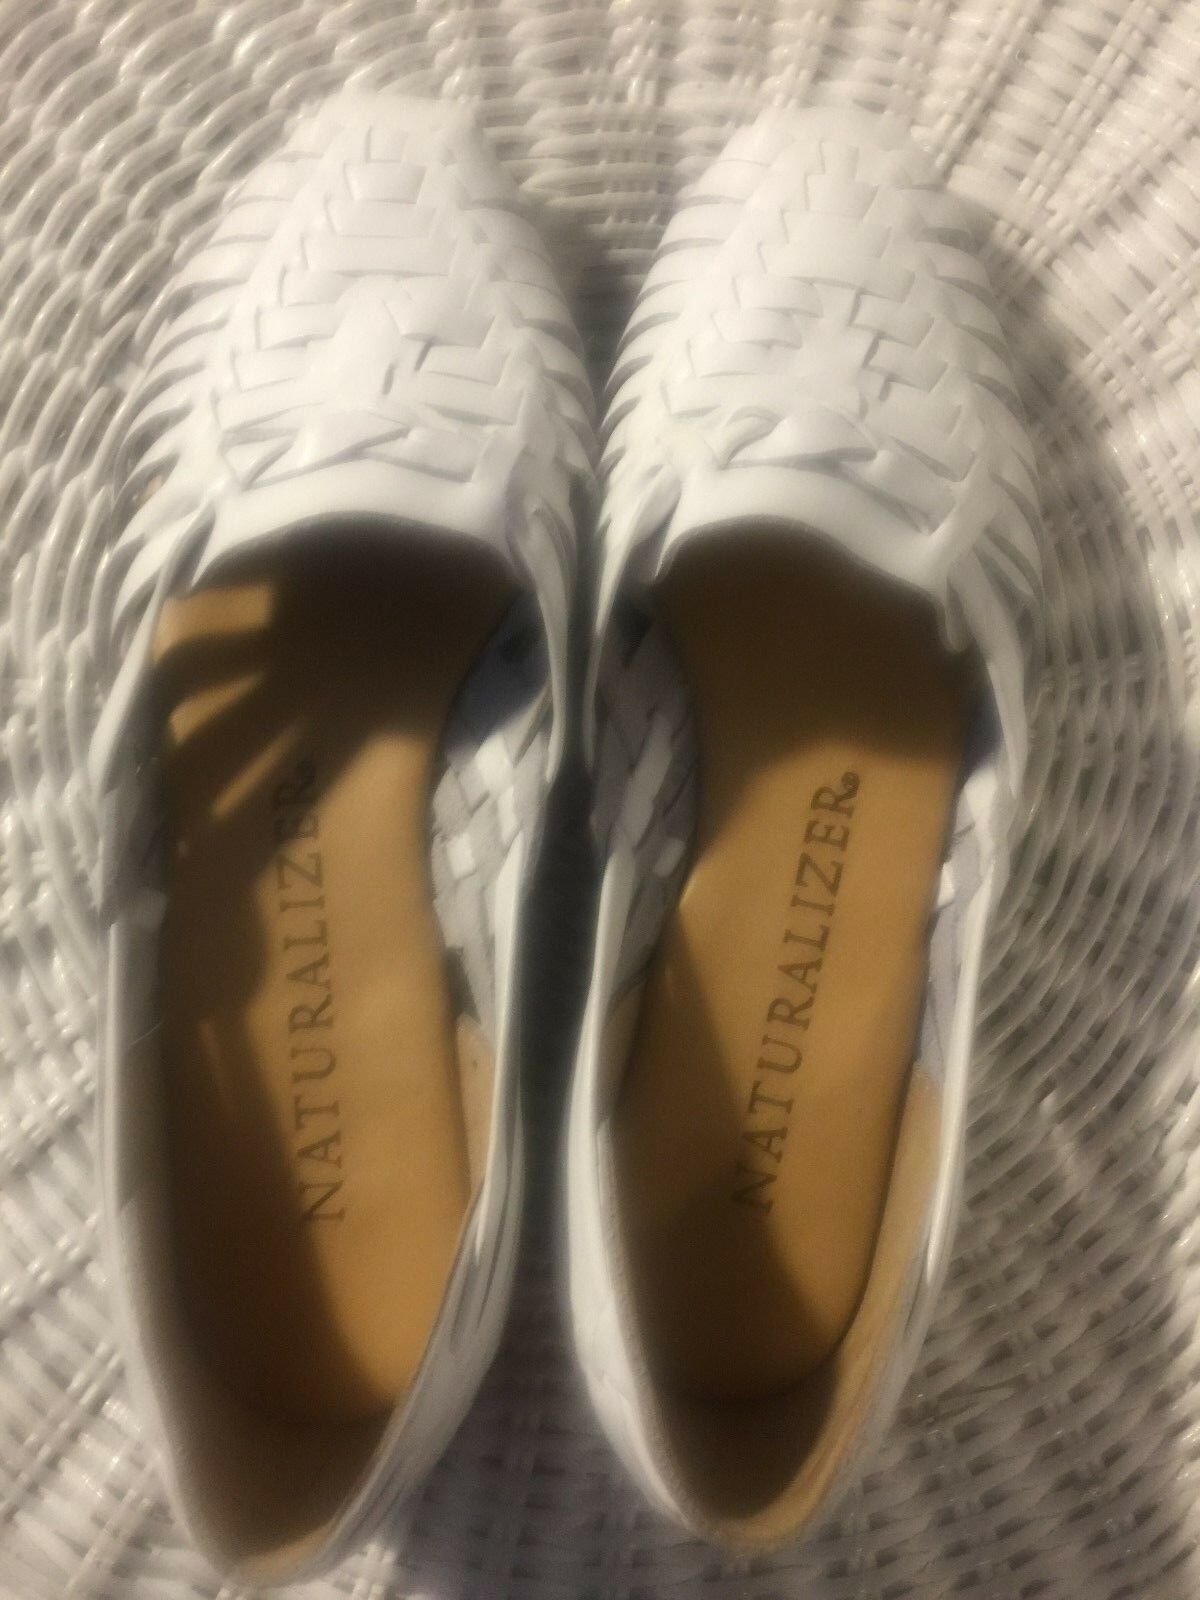 shoes, NATURALIZER, white leather, Moccasin look, slim 1 2  wedge heel, SZ  7W